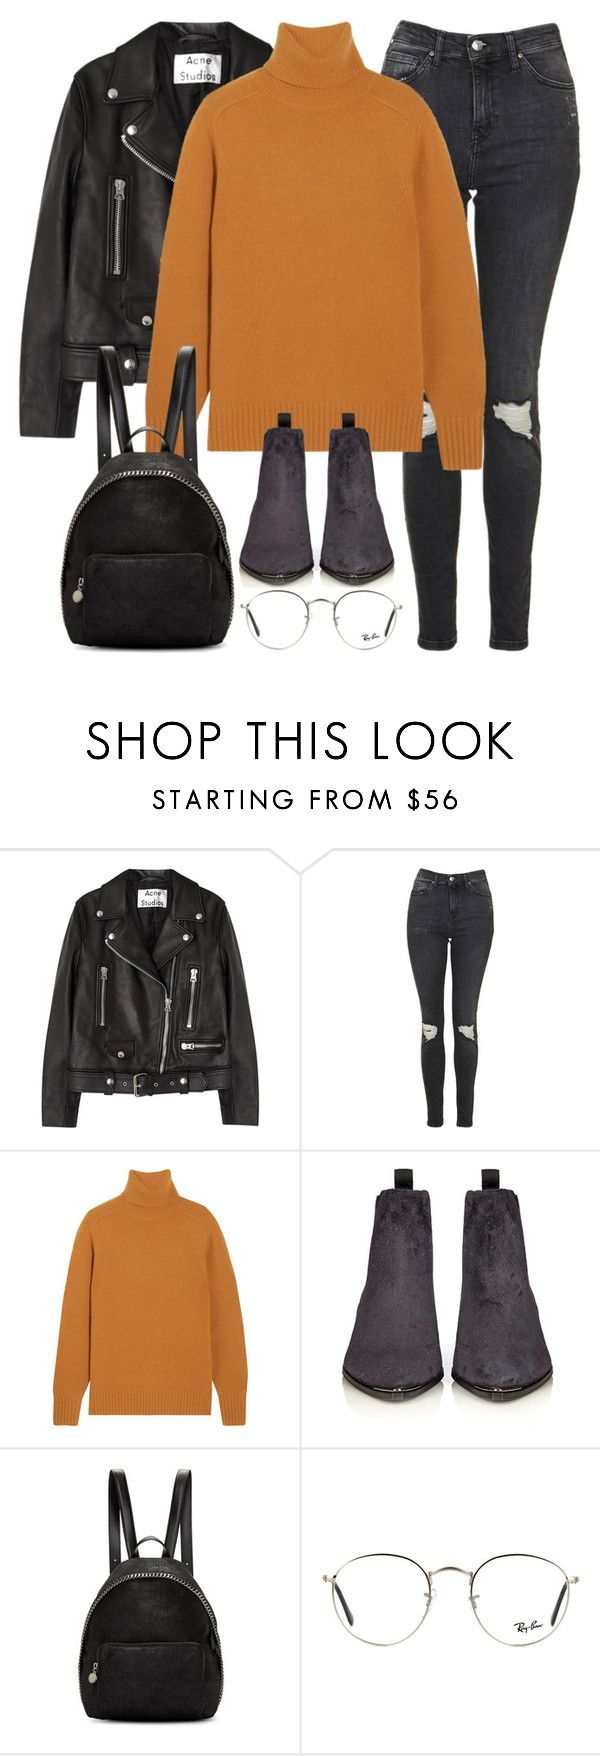 """Untitled #2878"" by elenaday ❤ liked on Polyvore featuring Acne Studios, Topshop, Chloé, STELLA McCARTNEY and Ray-Ban"